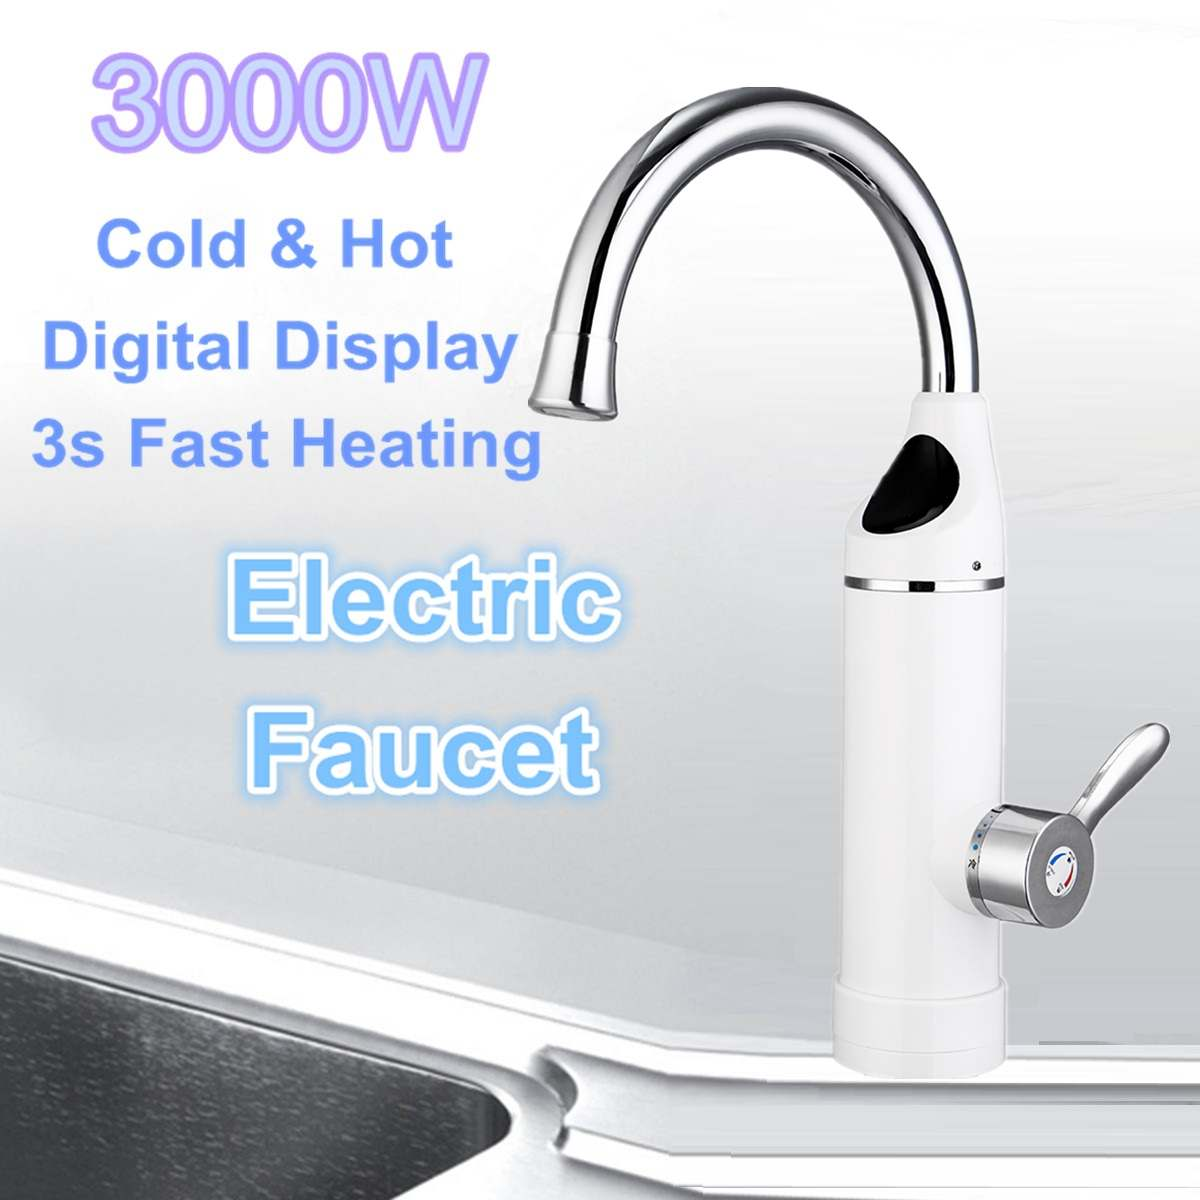 Electric Kitchen Water Heater Tap Instant 3000W Hot Water Faucet Heaters Cold Heating Faucet Bathroom Tankless InstantaneousElectric Kitchen Water Heater Tap Instant 3000W Hot Water Faucet Heaters Cold Heating Faucet Bathroom Tankless Instantaneous